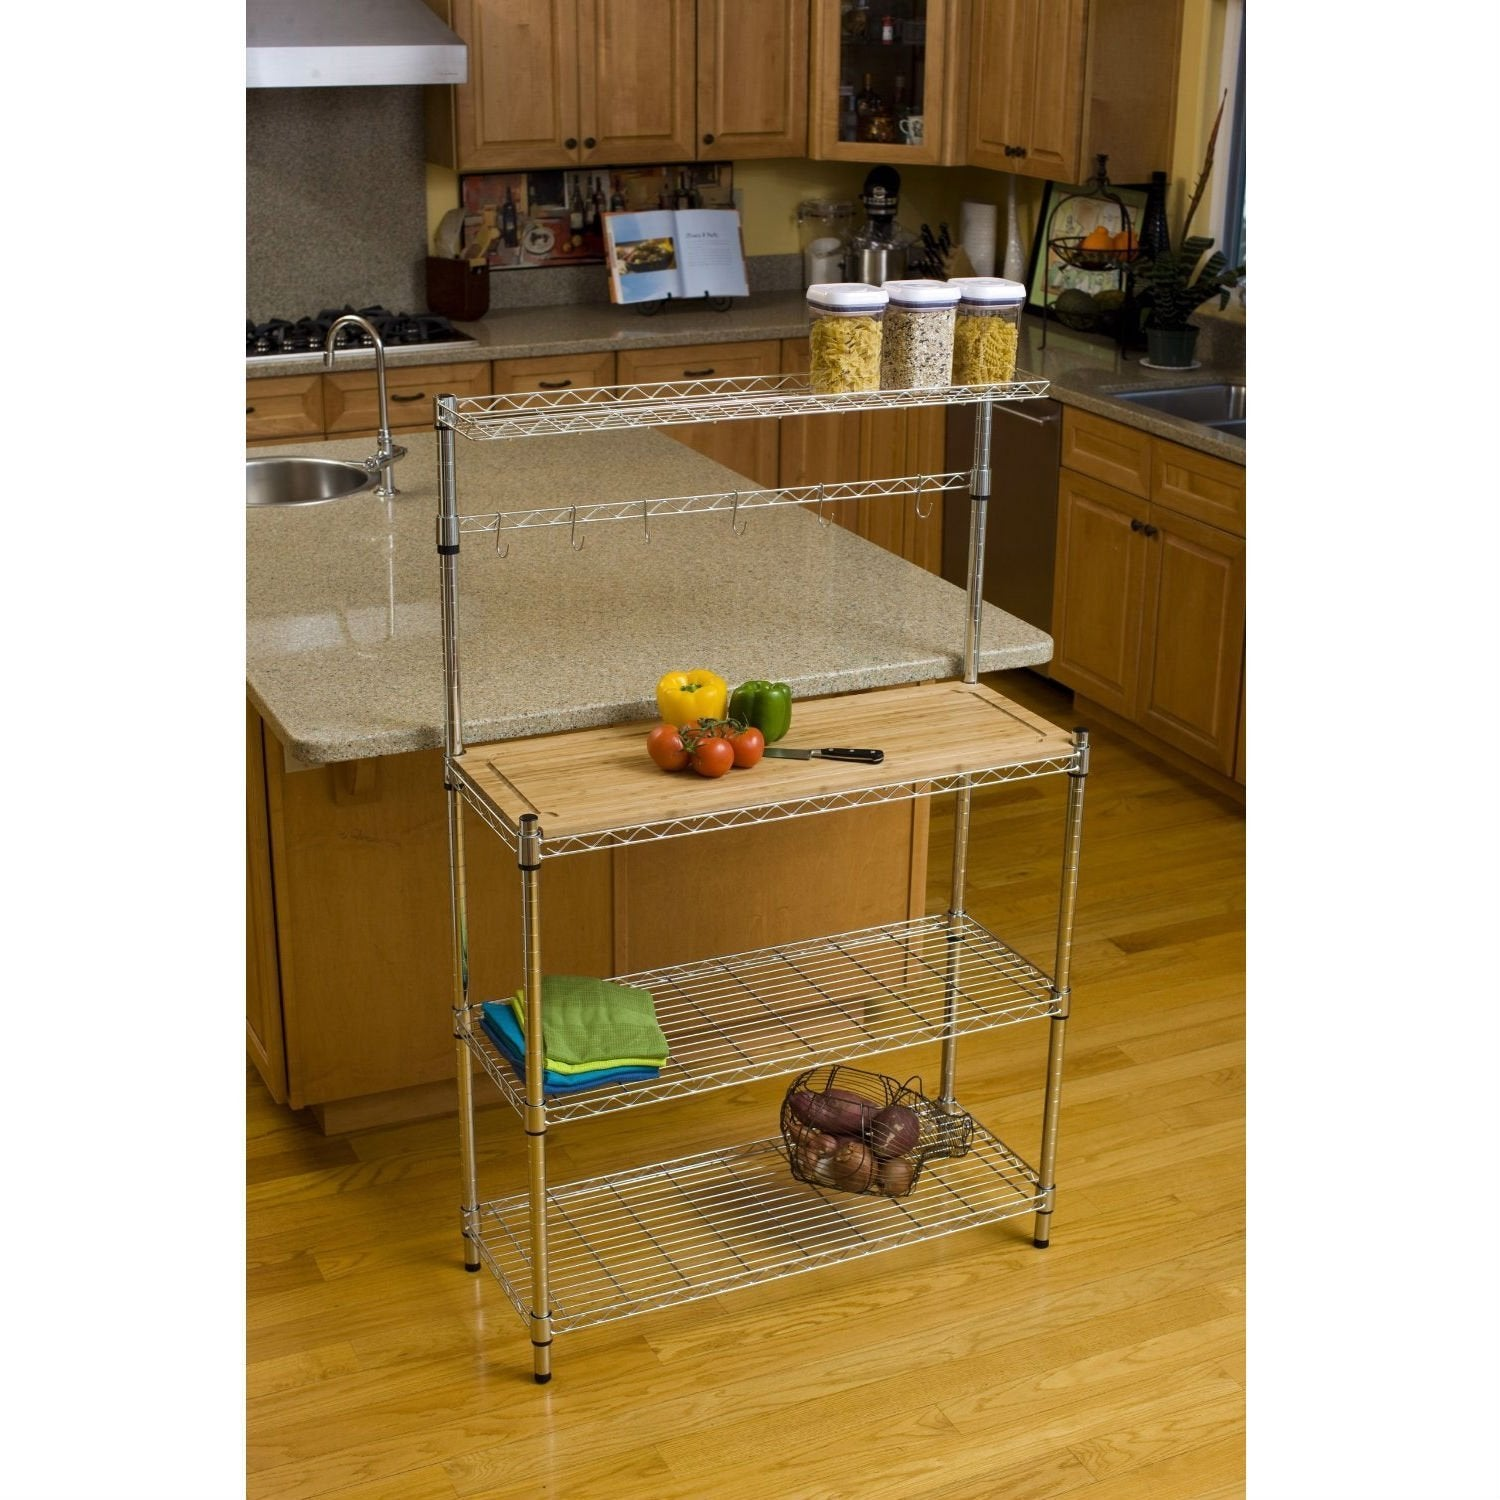 Metal Bakers Rack with Hanging Bar and Bamboo Cutting Board.